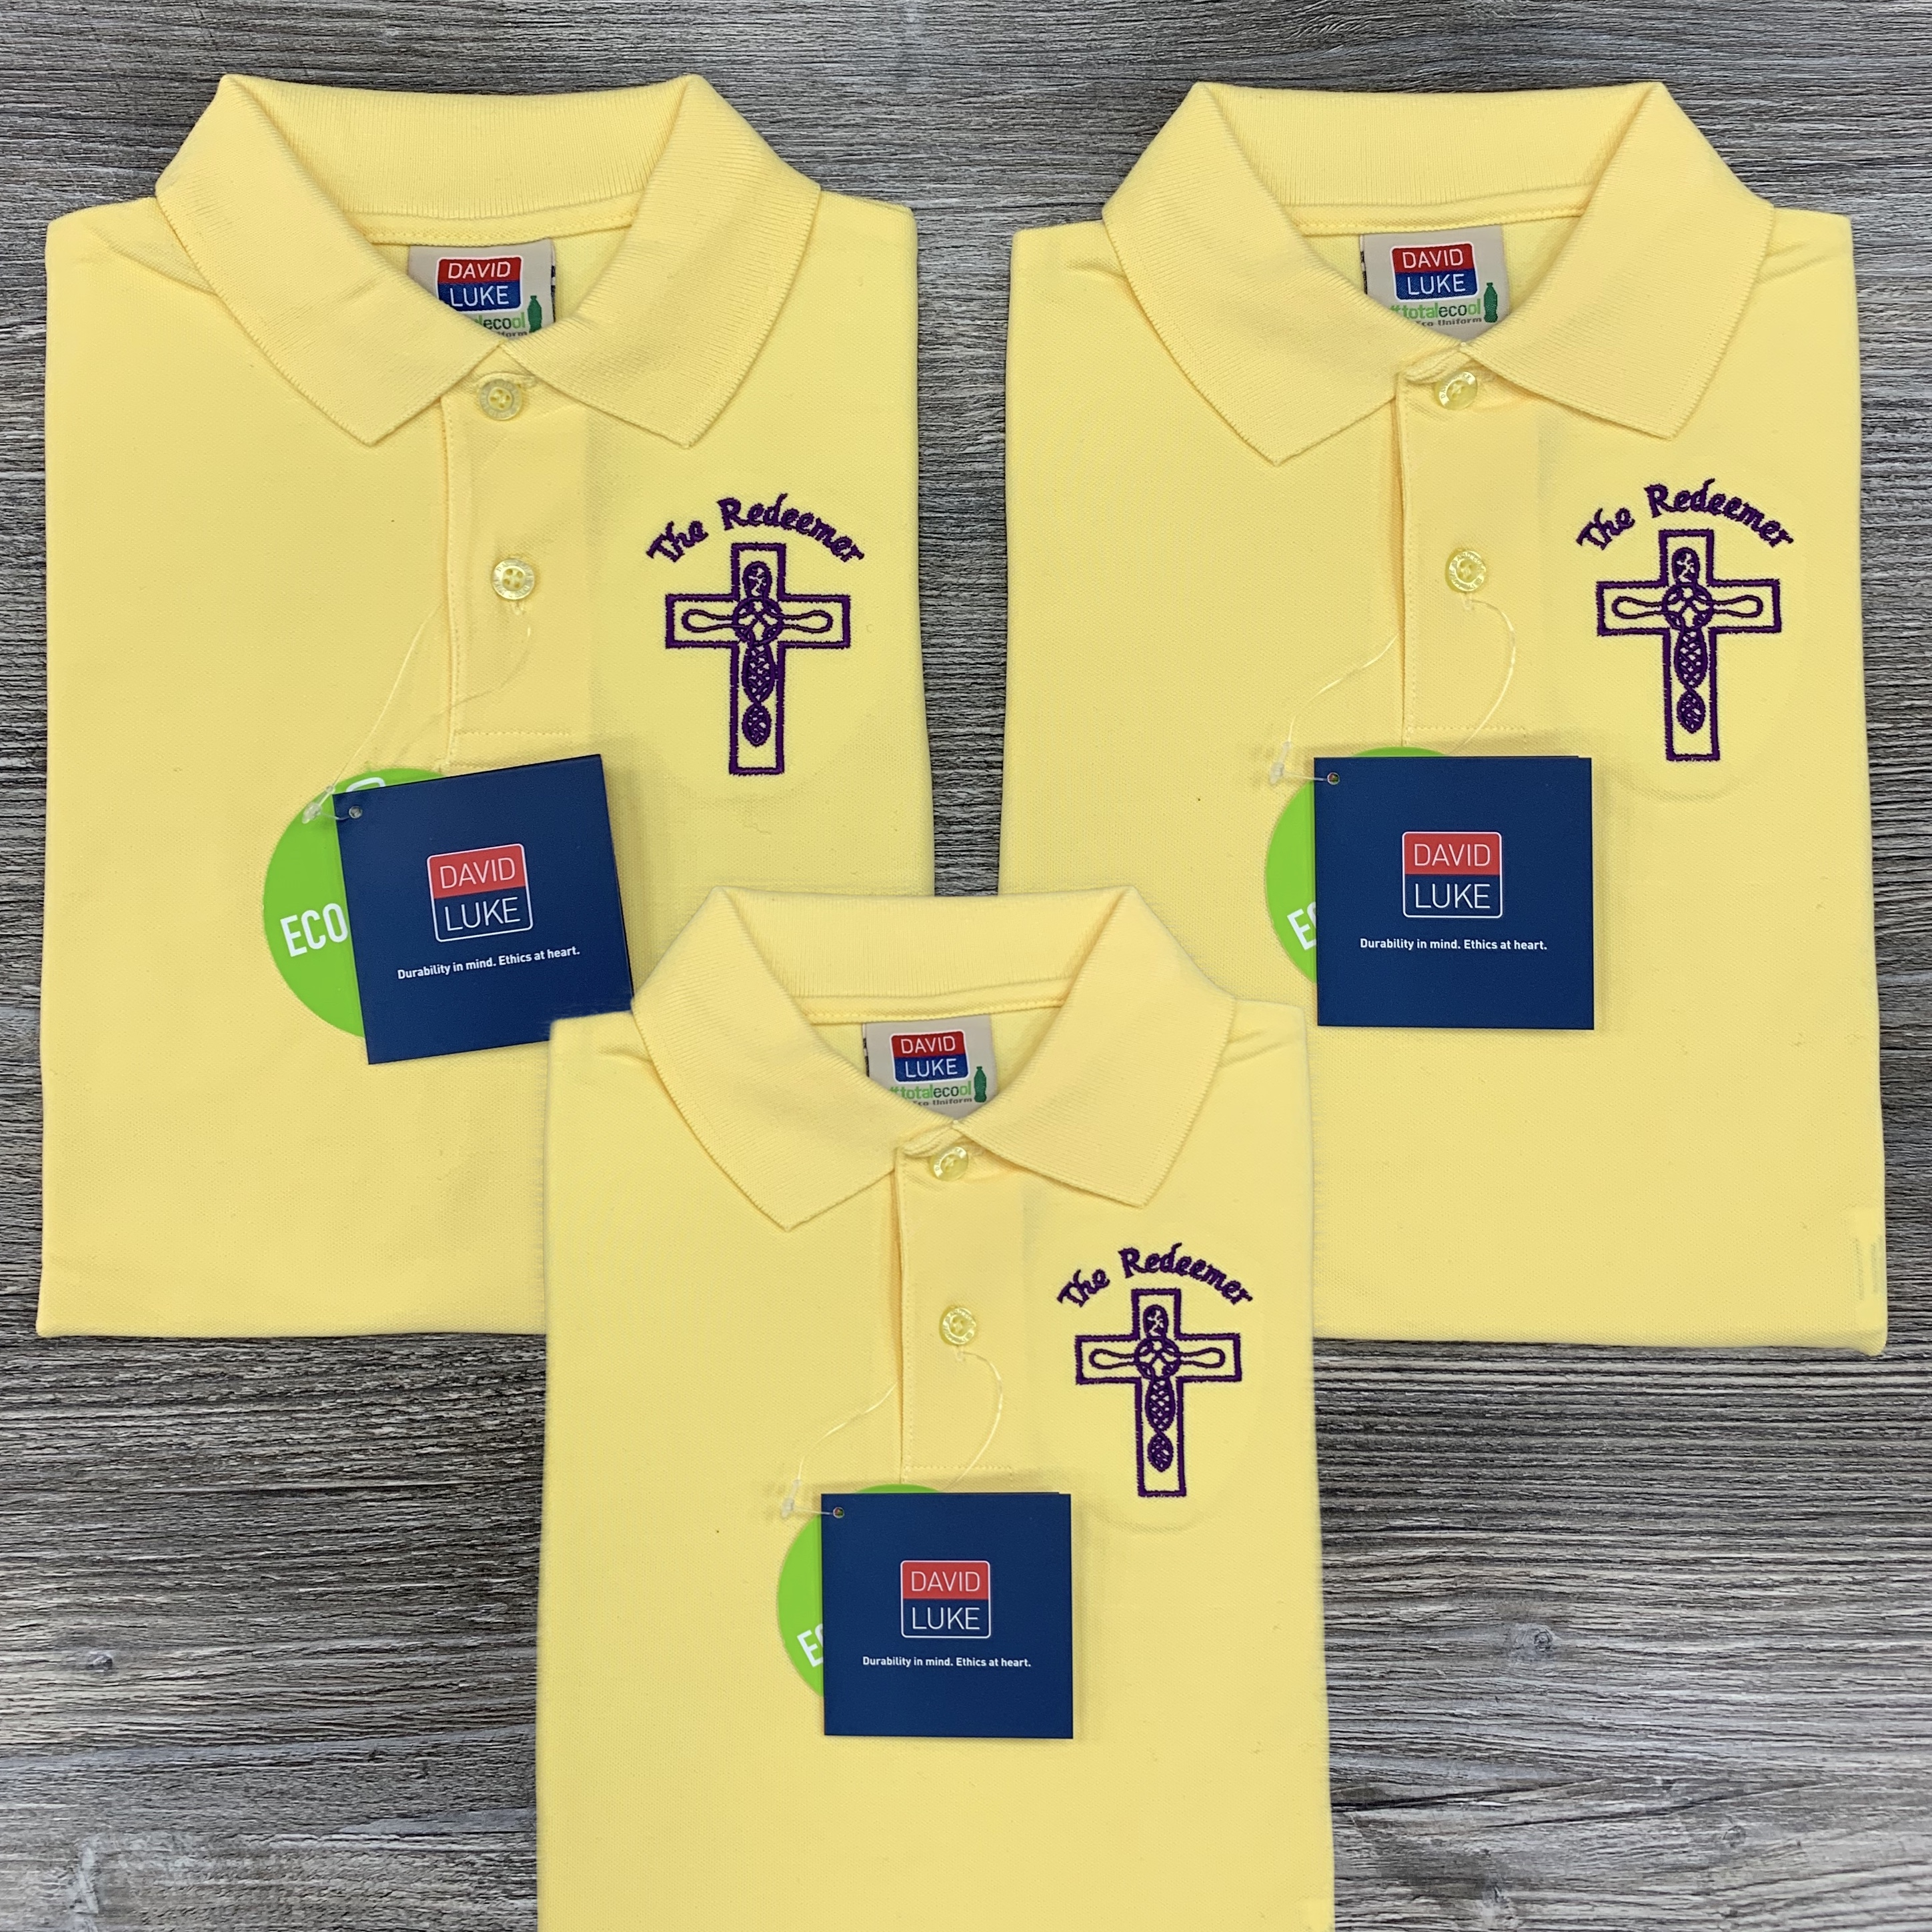 3x Redeemer Badged Polos